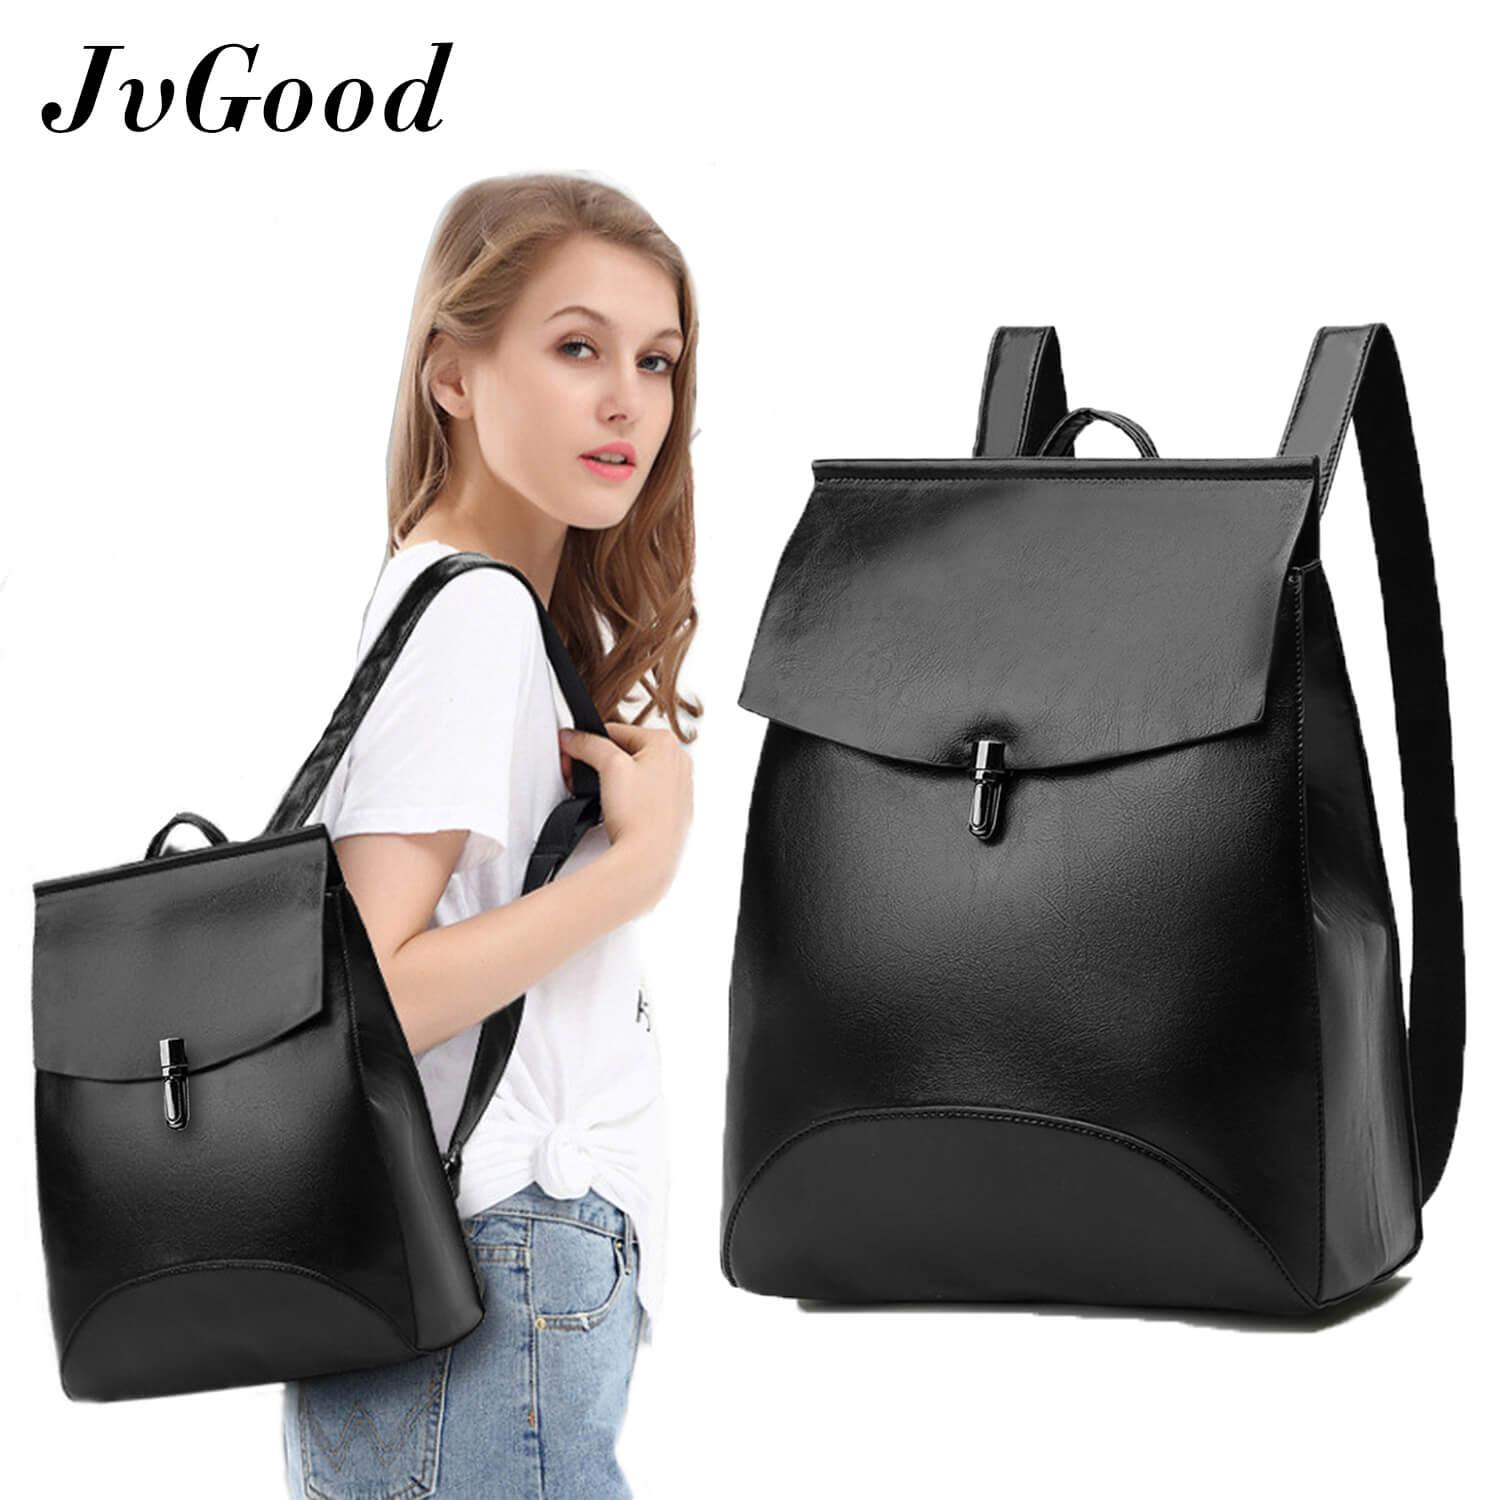 How To Get Jvgood Women S Pu Leather Backpack Purse Ladies Casual Shoulder Bag Sch**l Bag For Girls